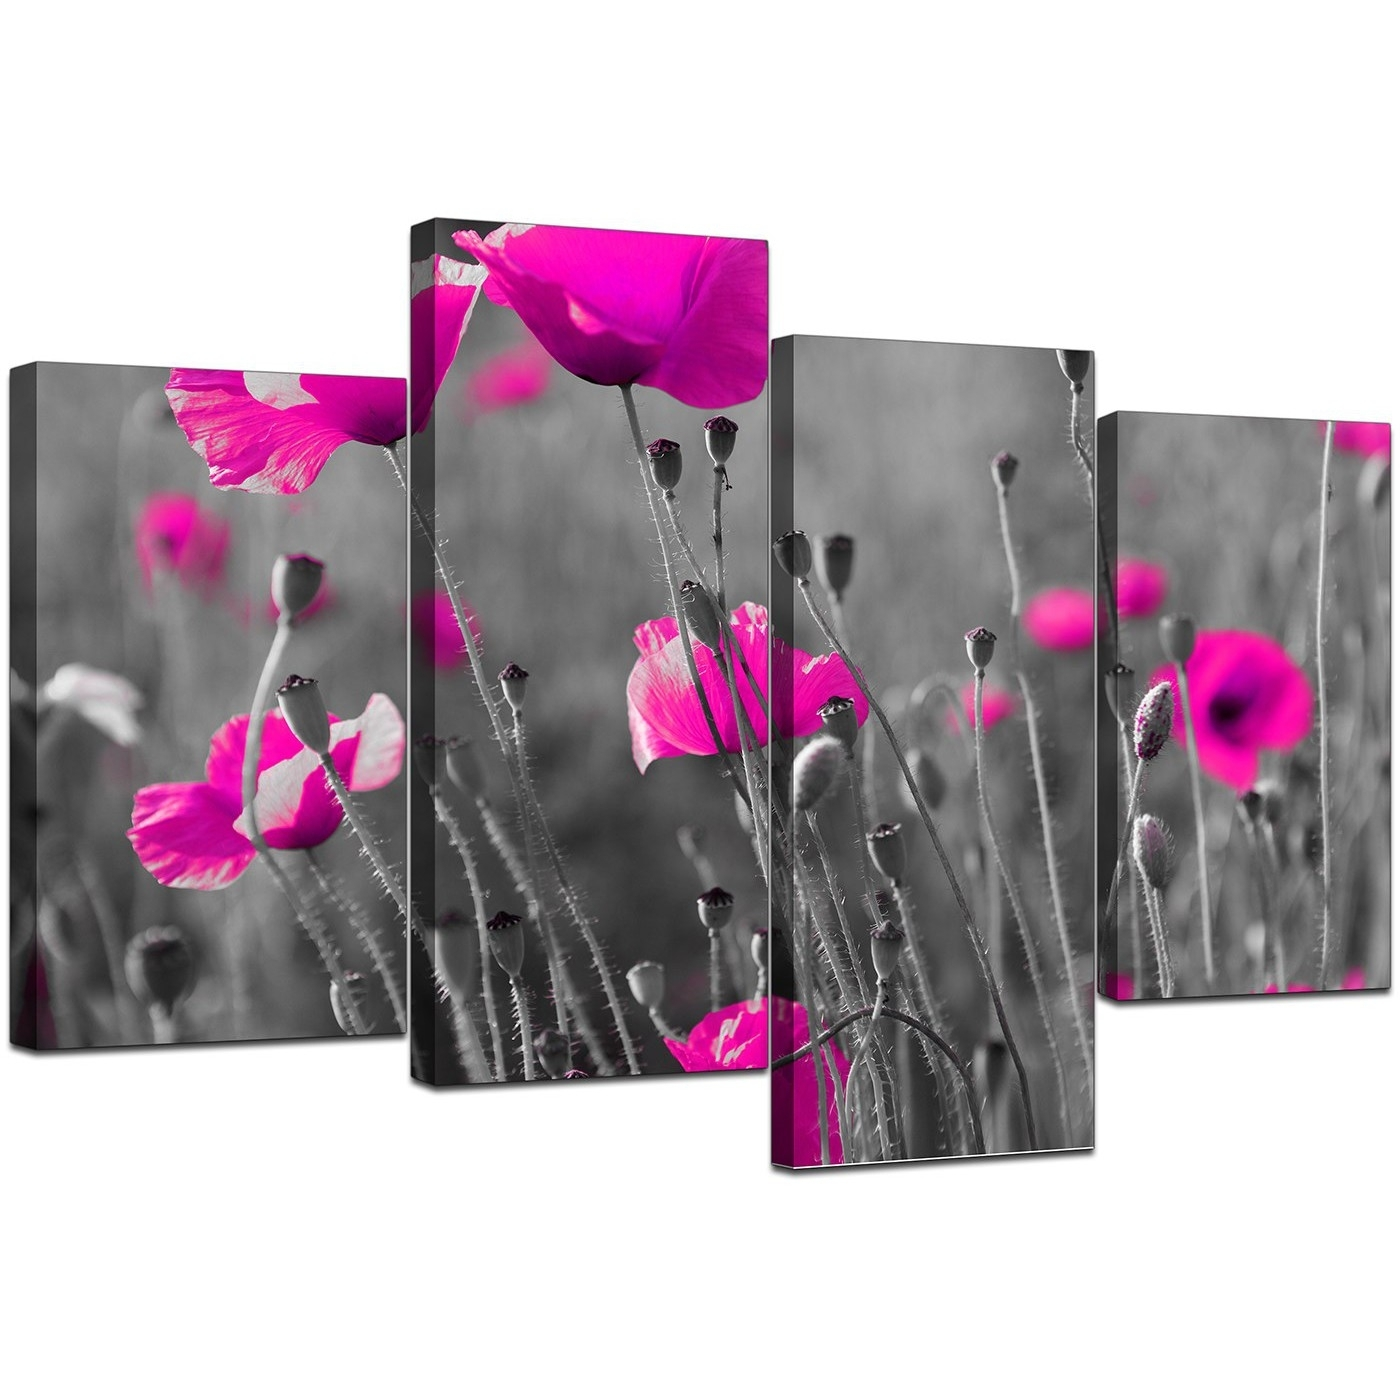 Canvas Art Of Pink Poppies In Black & White For Your Girls Bedroom For Most Recently Released Pink Canvas Wall Art (View 3 of 15)